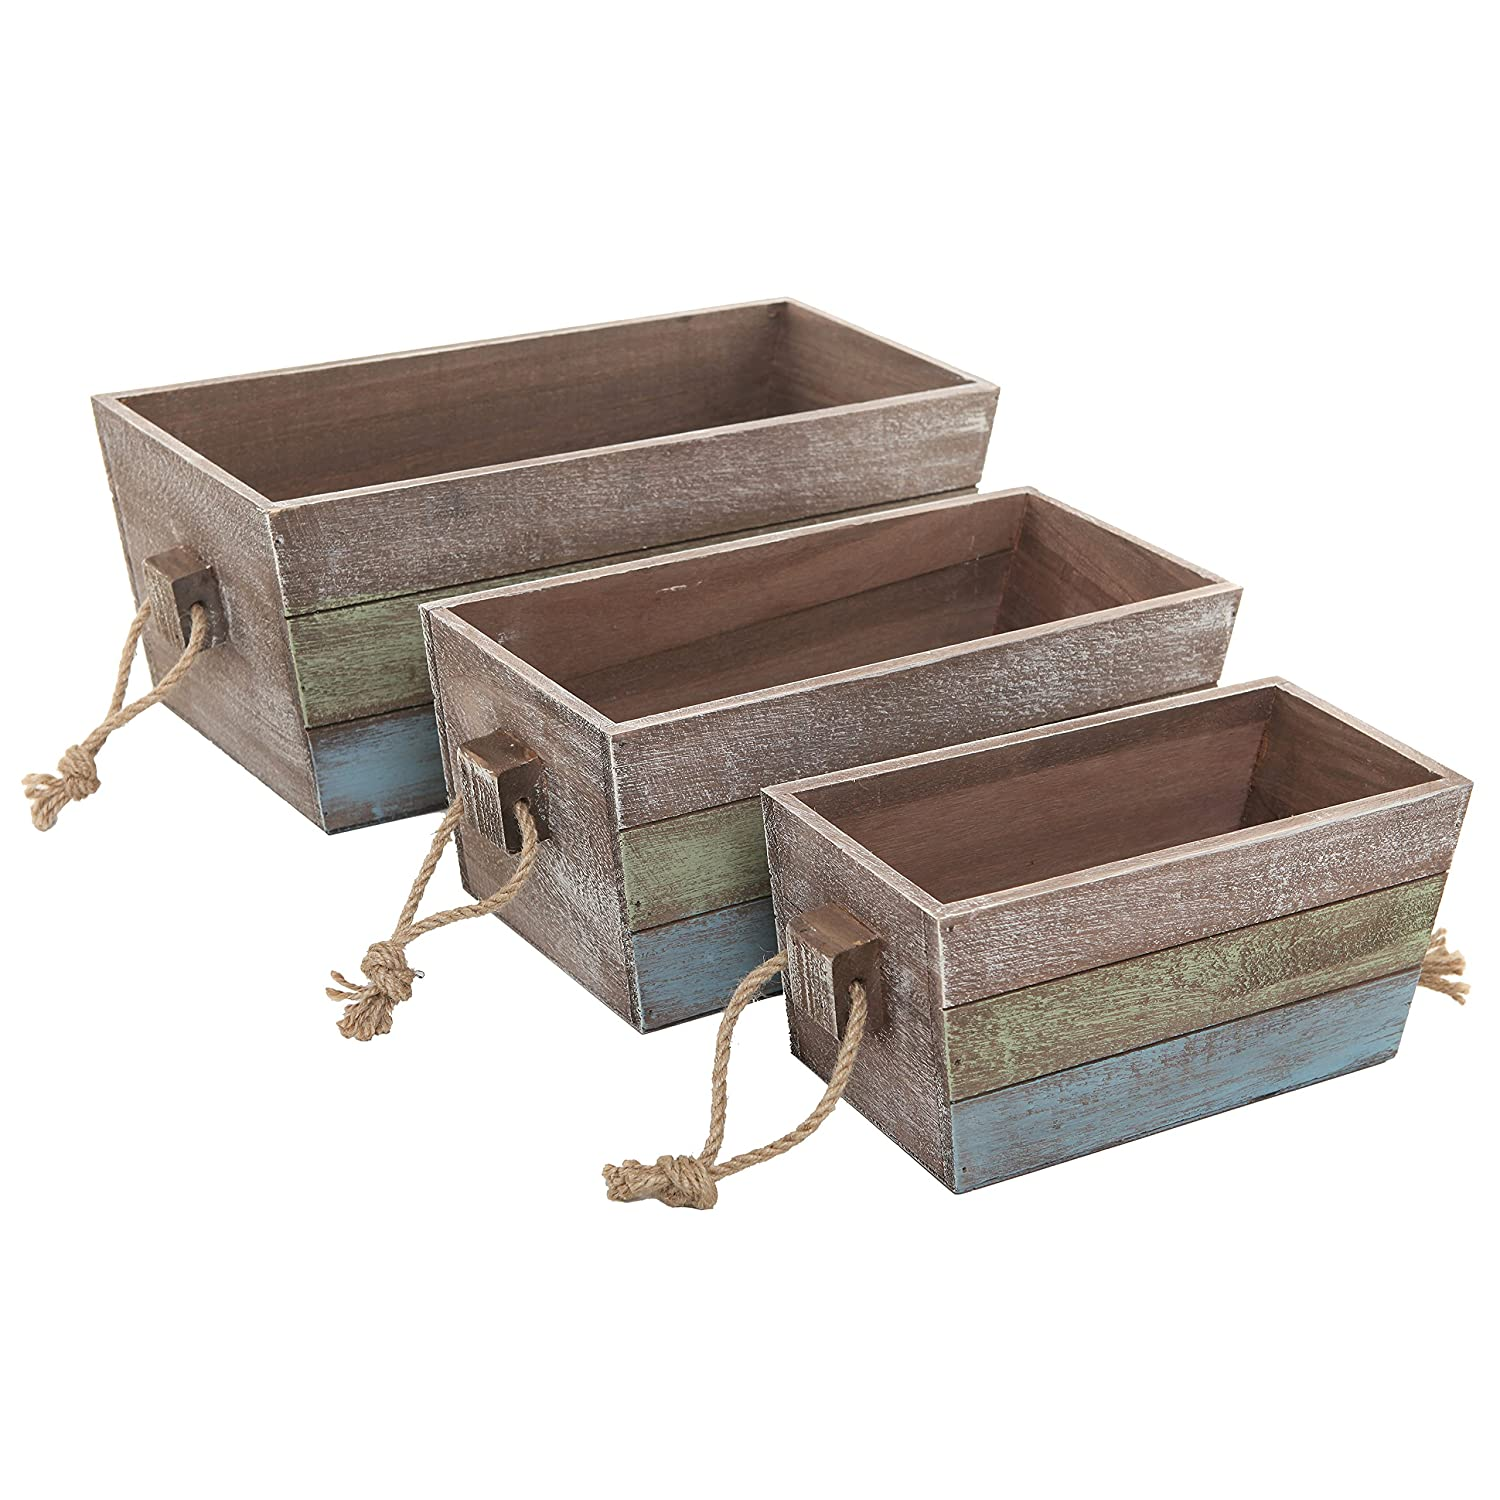 Bon Amazon.com: MyGift Nesting Wood Storage Crates, Stripe Design Wood Boxes  With Rope Handles, Set Of 3, Brown: Home U0026 Kitchen